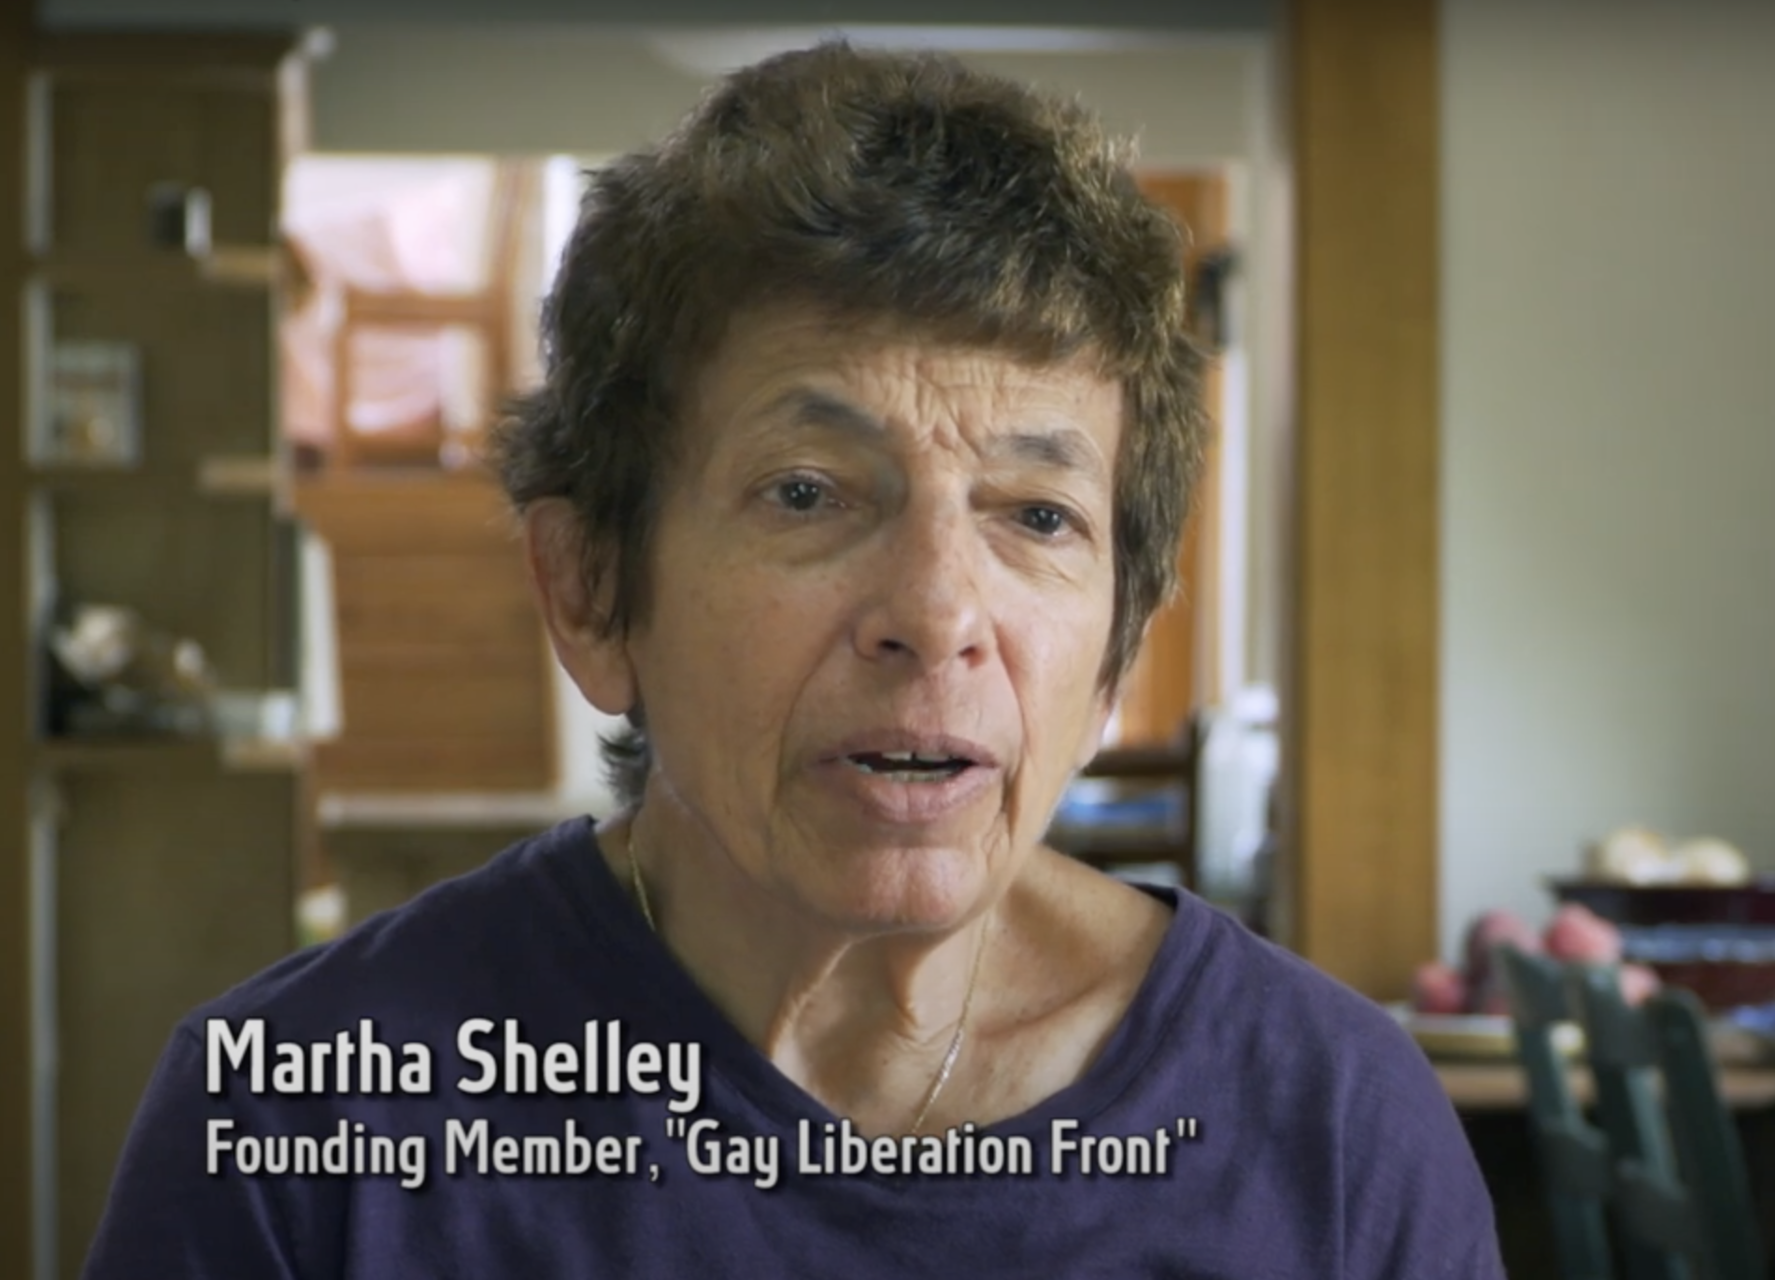 Martha Shelley, Founding Member, Gay Liberation Front